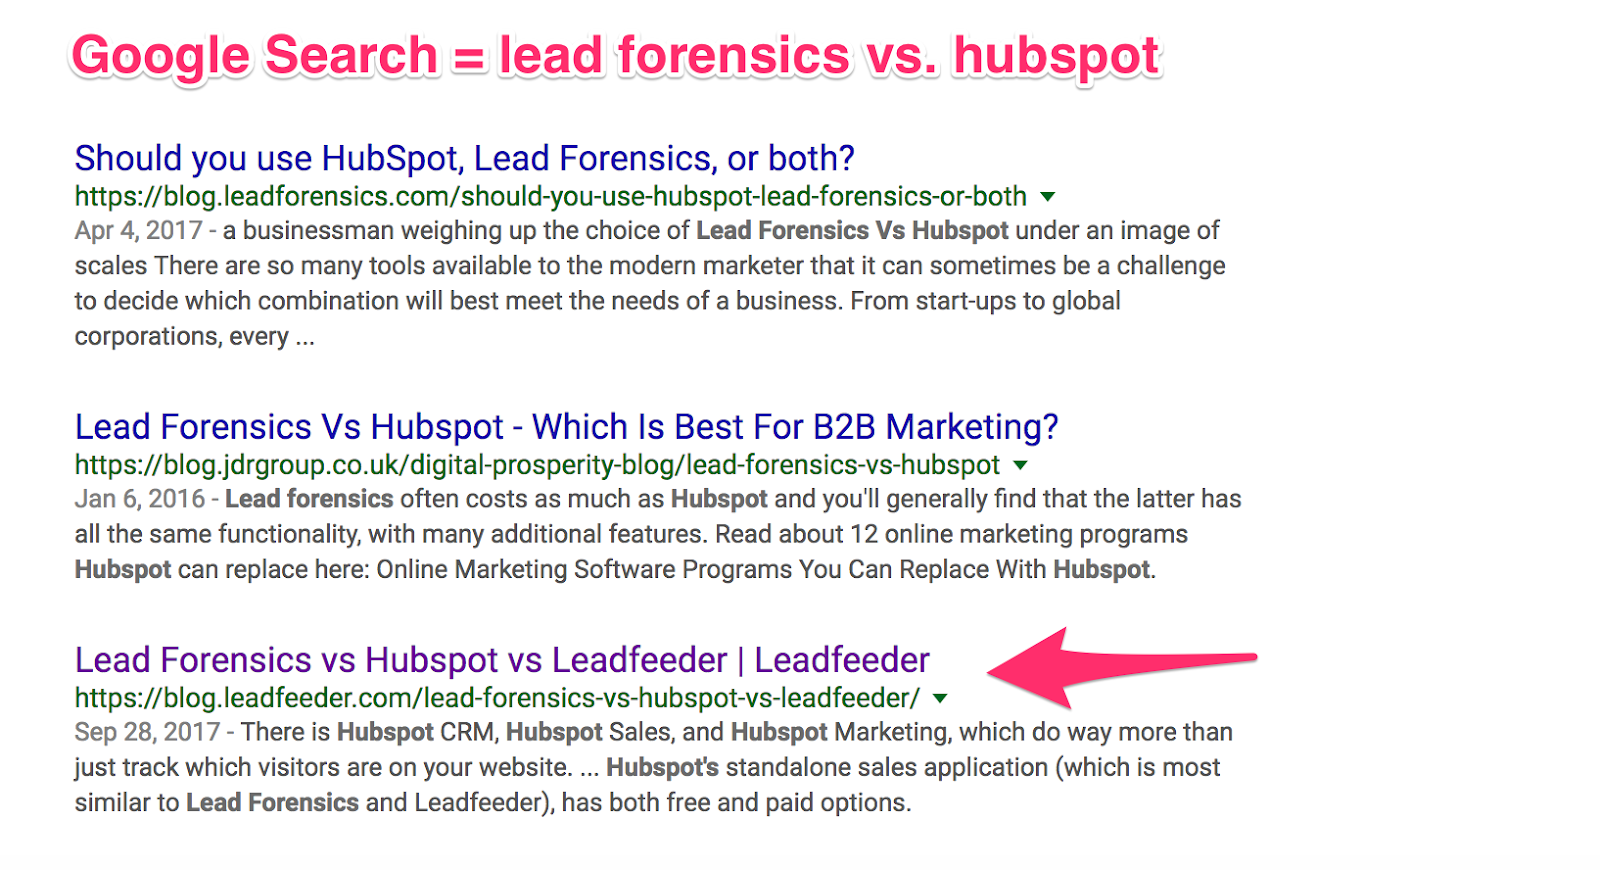 Google Search: lead forensics vs hubspot